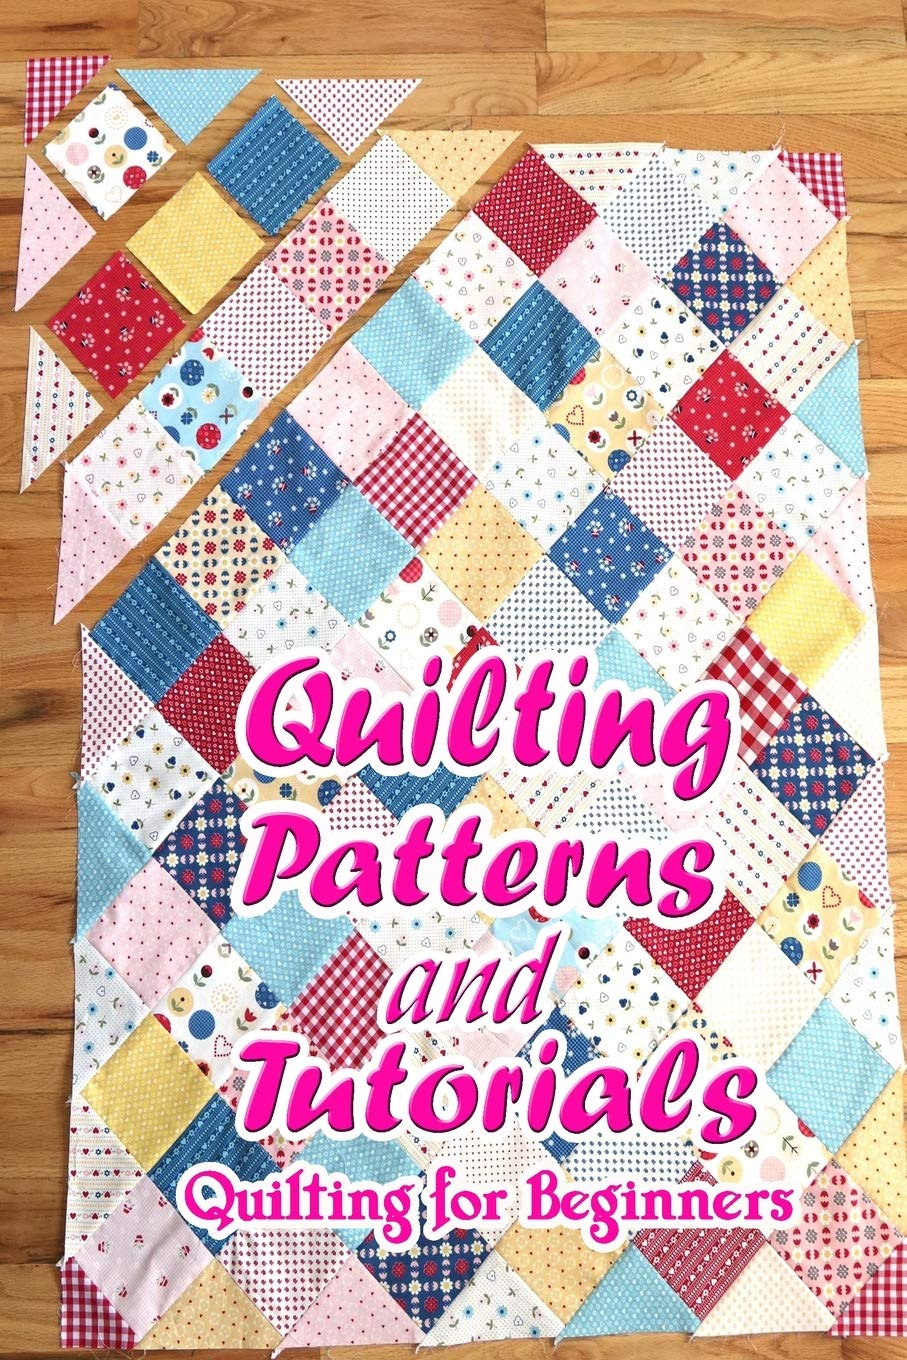 Buy Quilting Patterns and Tutorials Quilting for Beginners ...